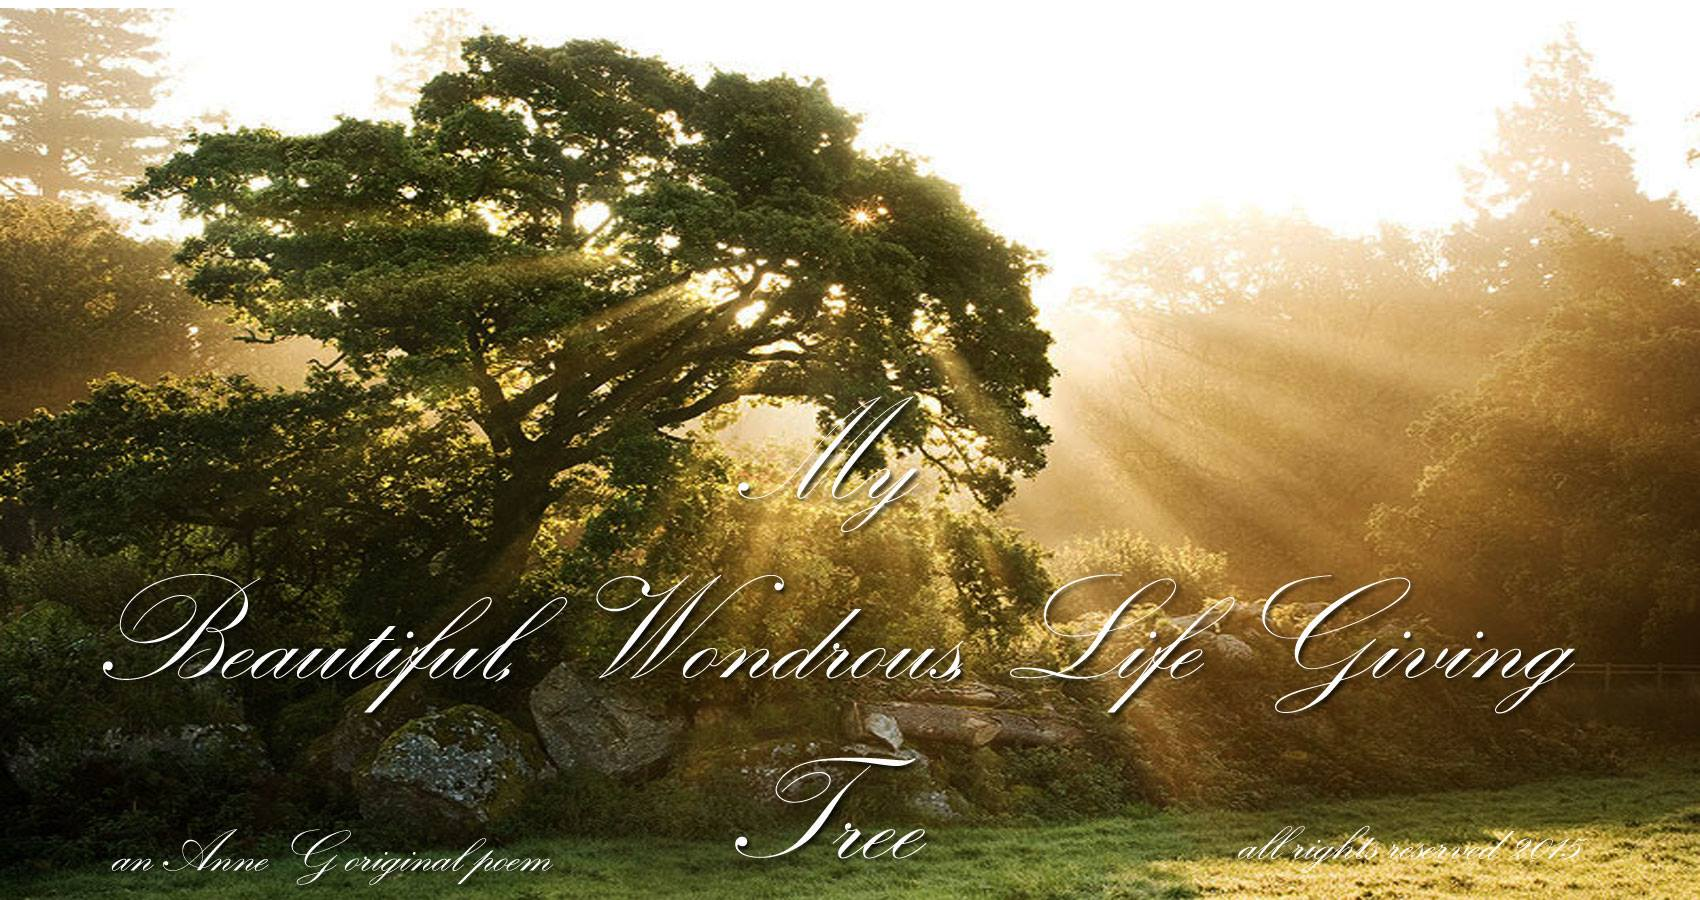 spillwords.com My Beautiful Wondrous Life Giving Tree by Anne G